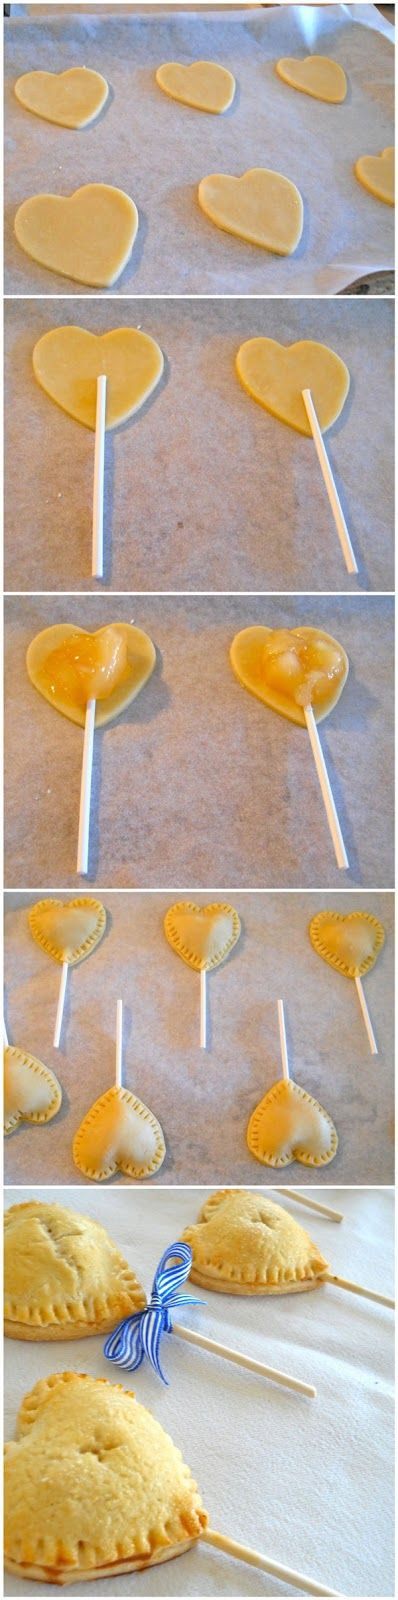 apple pie pops // This is so cute! They would work great for parties I'm sure!